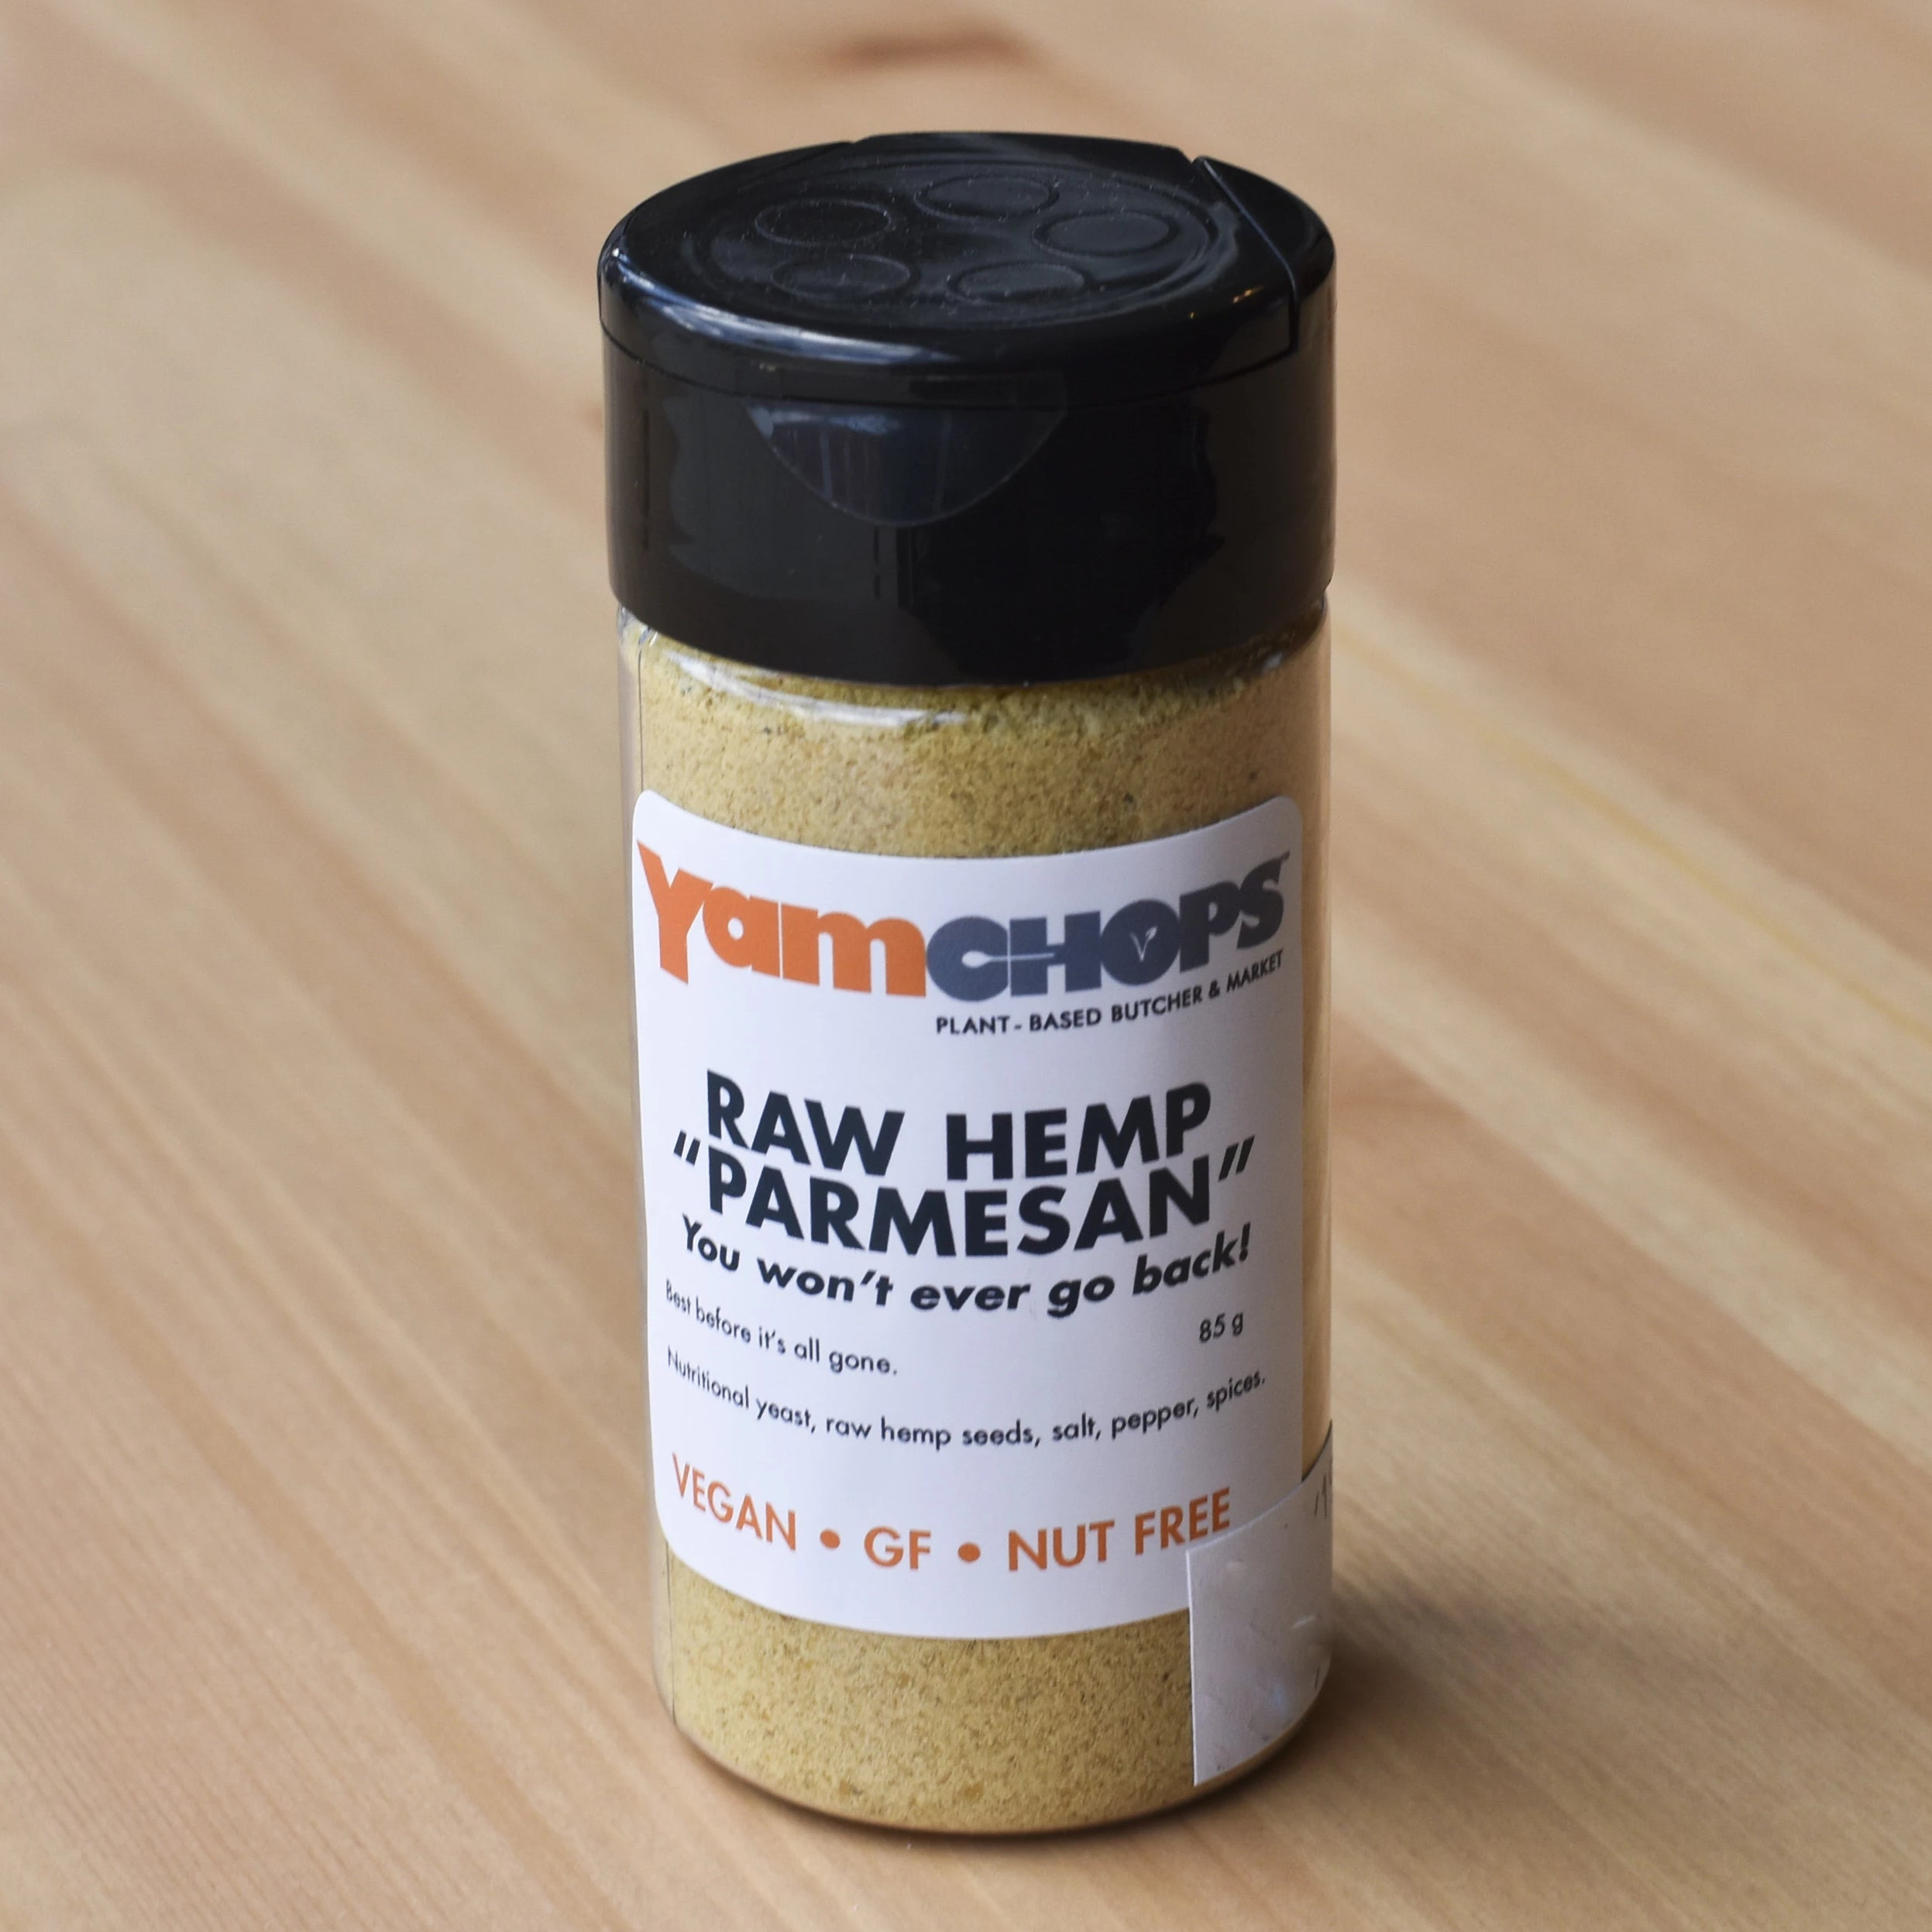 YAMCHOPS OWN RAW HEMP PARMESAN